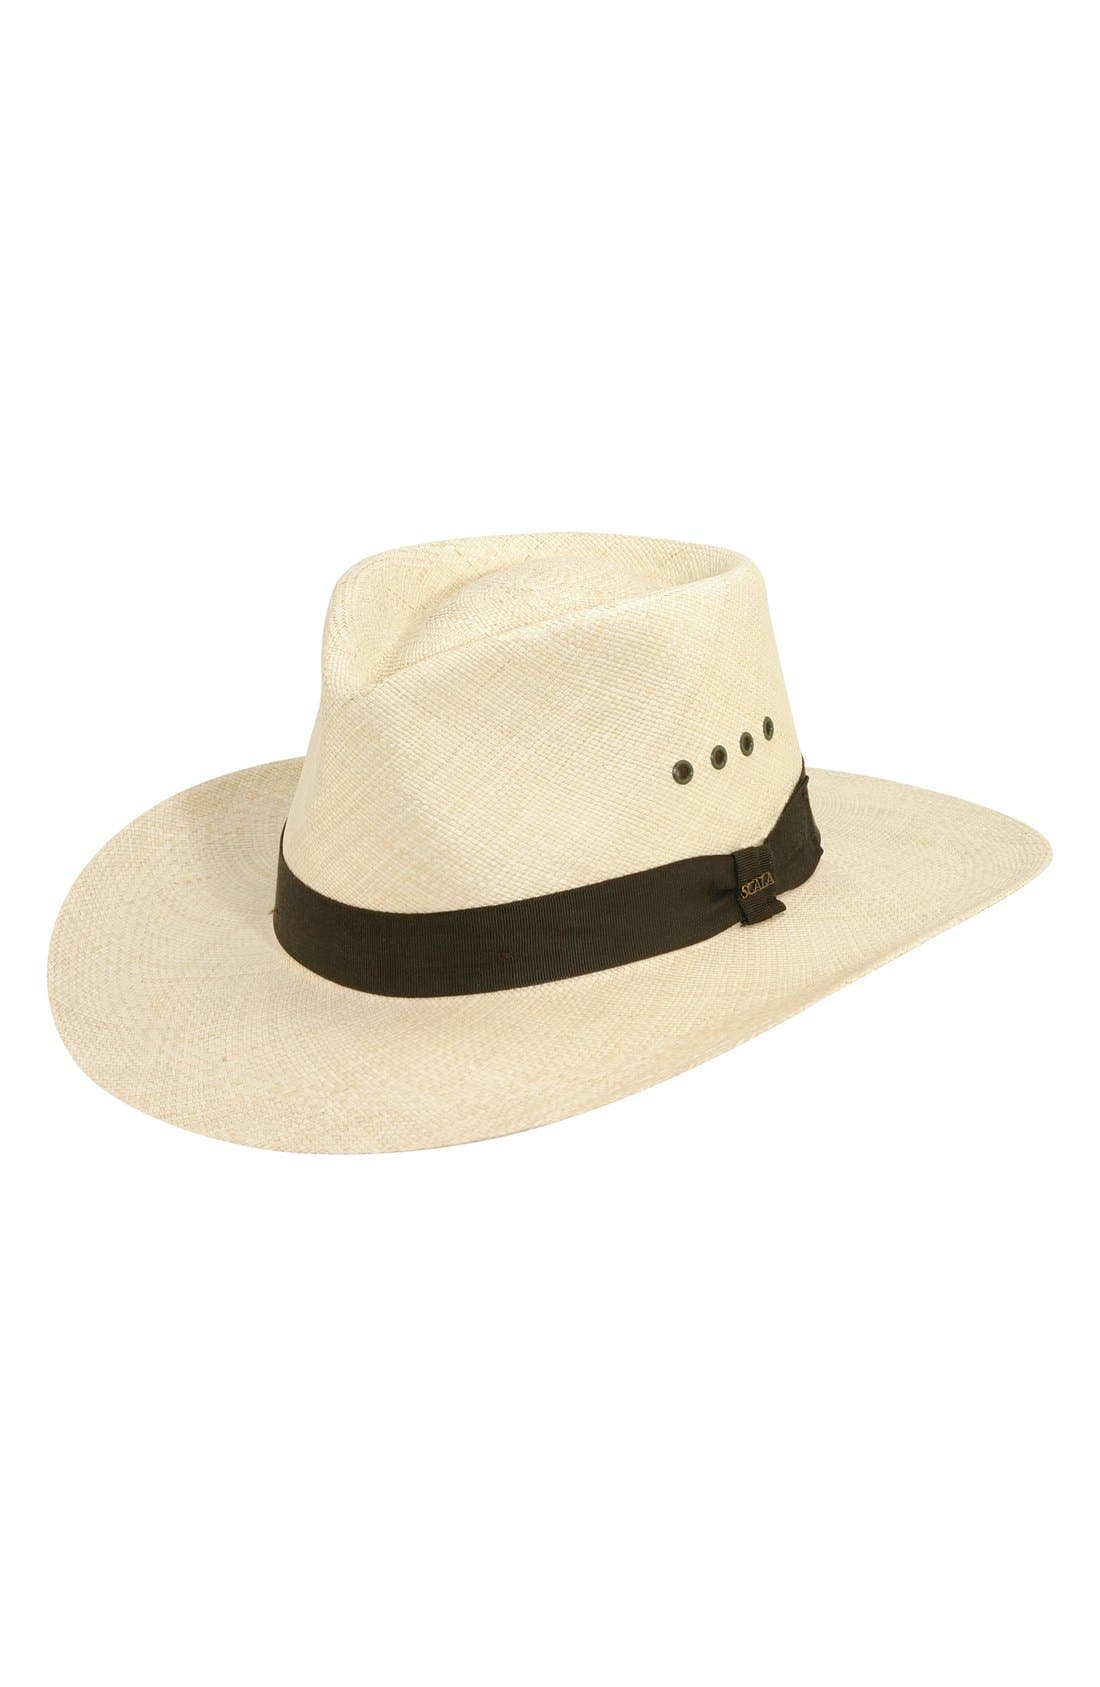 Straw Outback Hat,                         Main,                         color, Natural